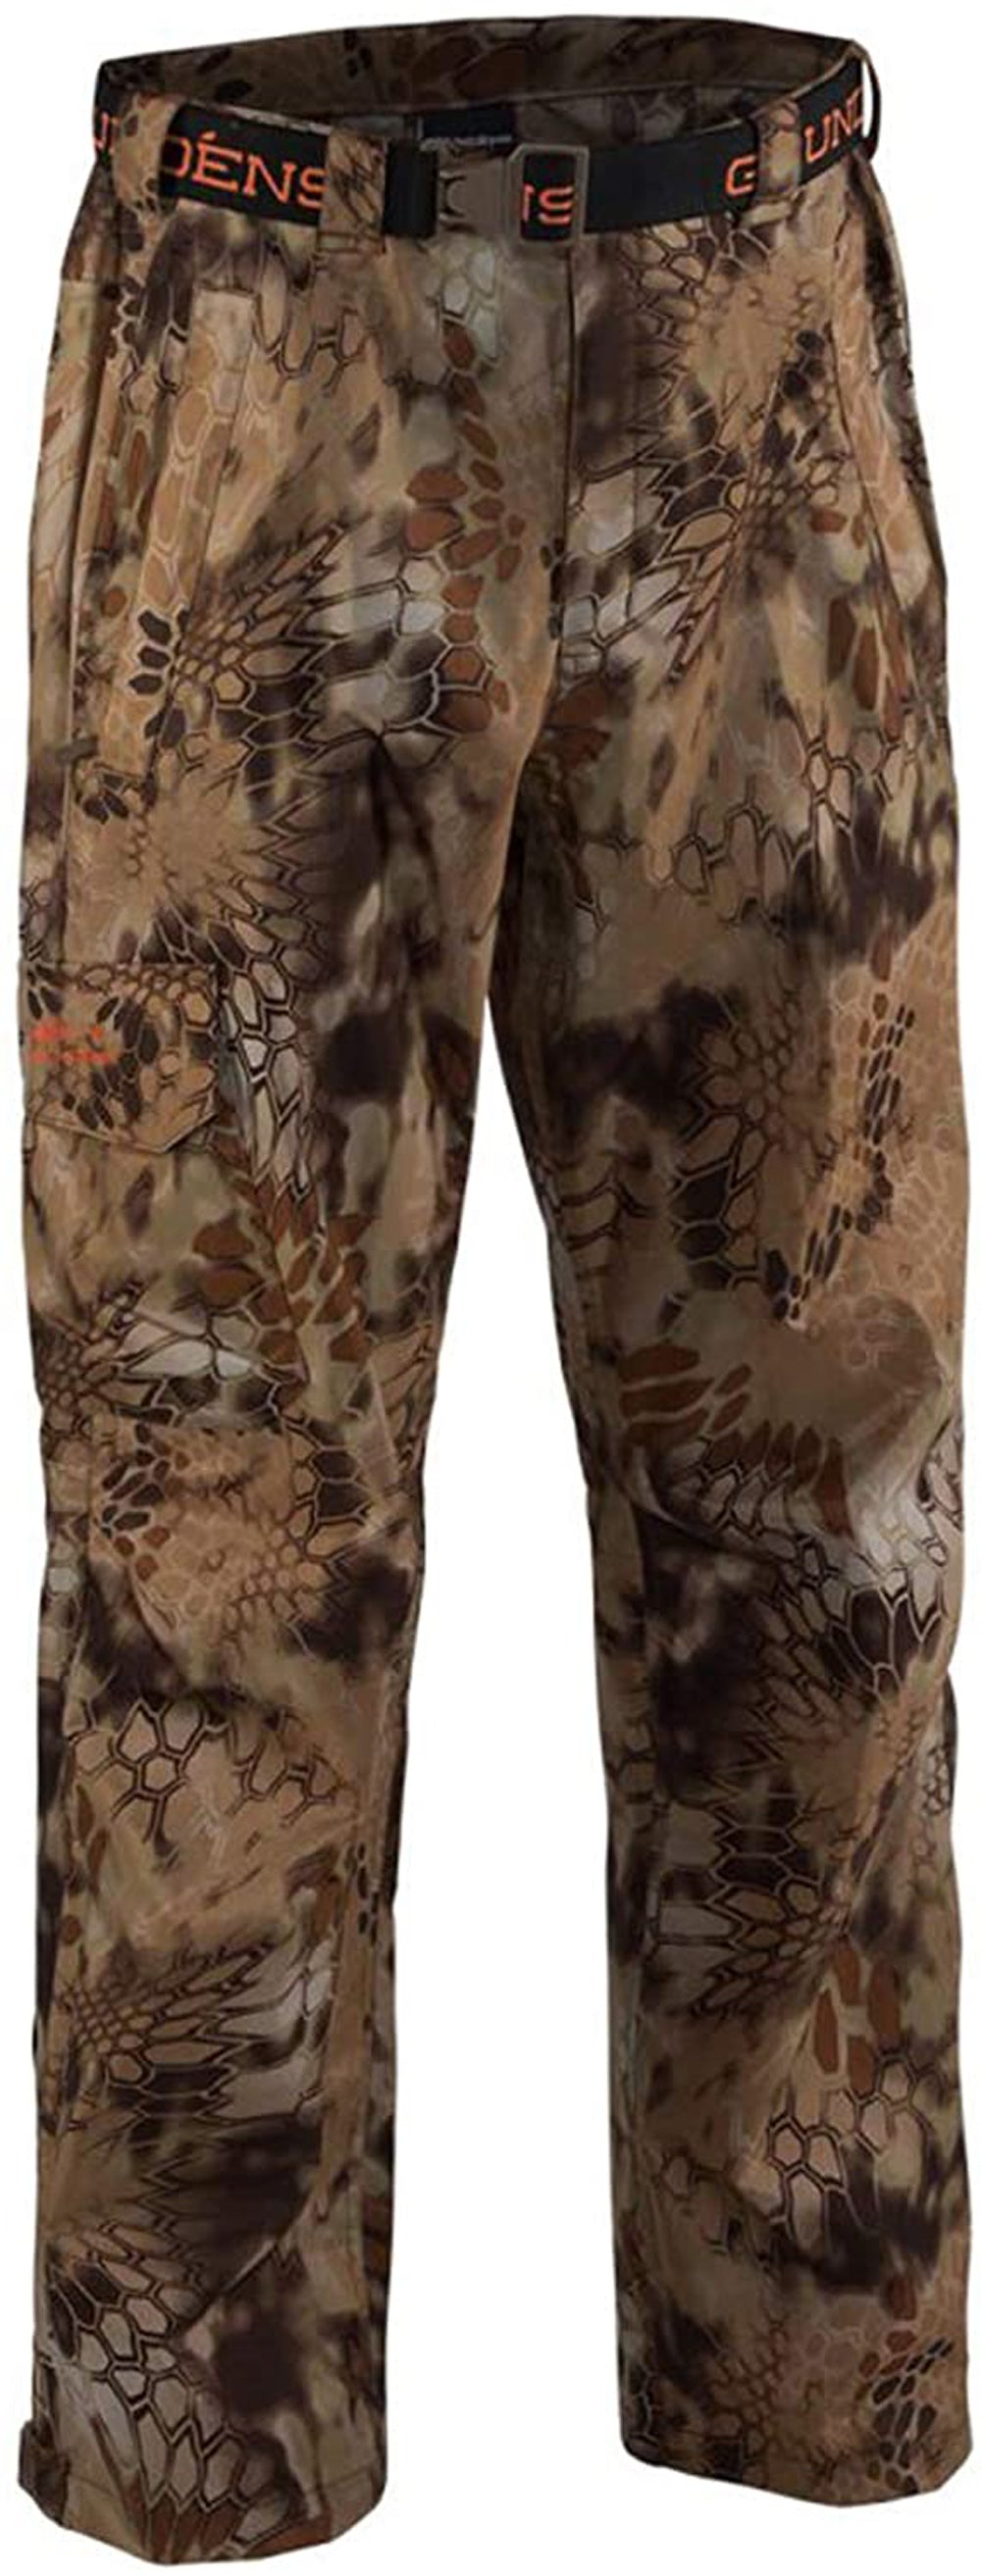 Weather Watch Trouser in Kryptek Highlander color from the front view